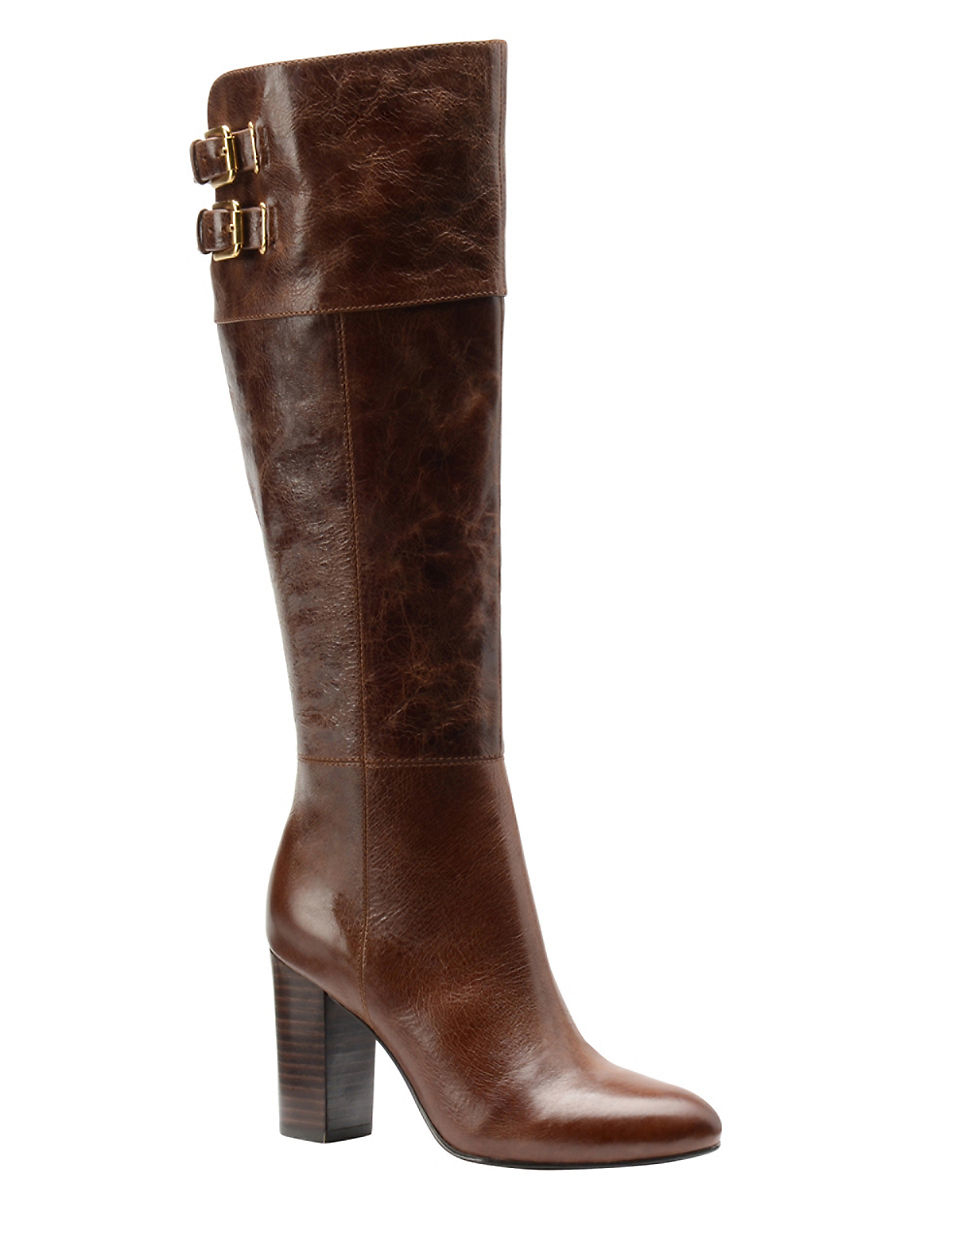 Free shipping and returns on Women's Knee-High Medium Boots at tennesseemyblogw0.cf